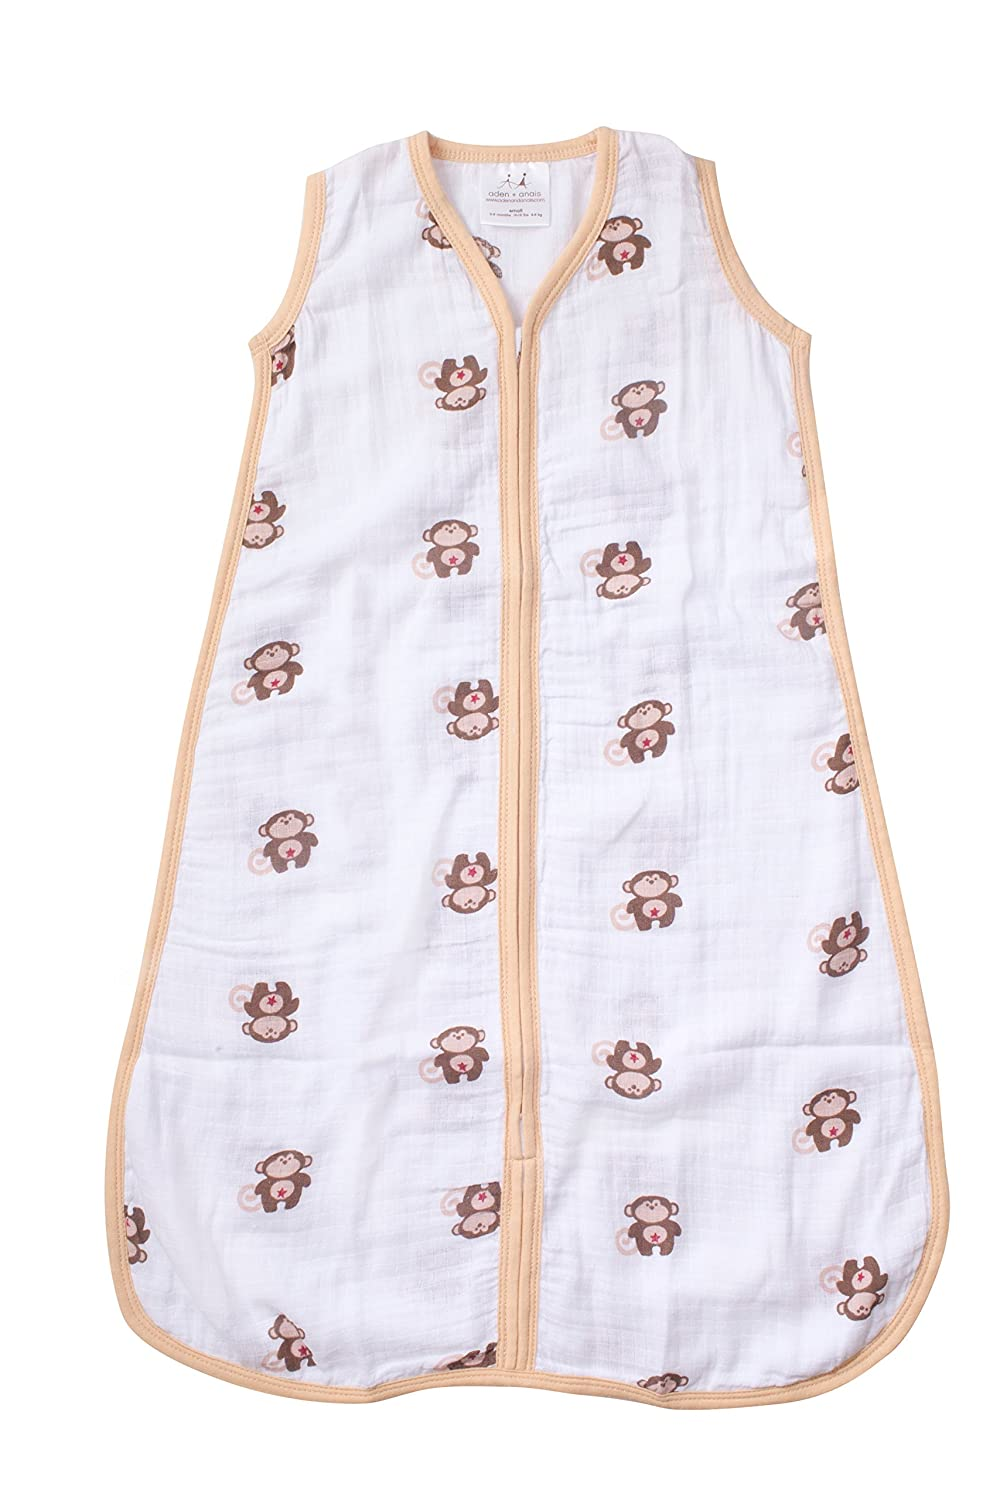 aden by aden + anais Sleeping Bag, Safari Friends- Monkey- M